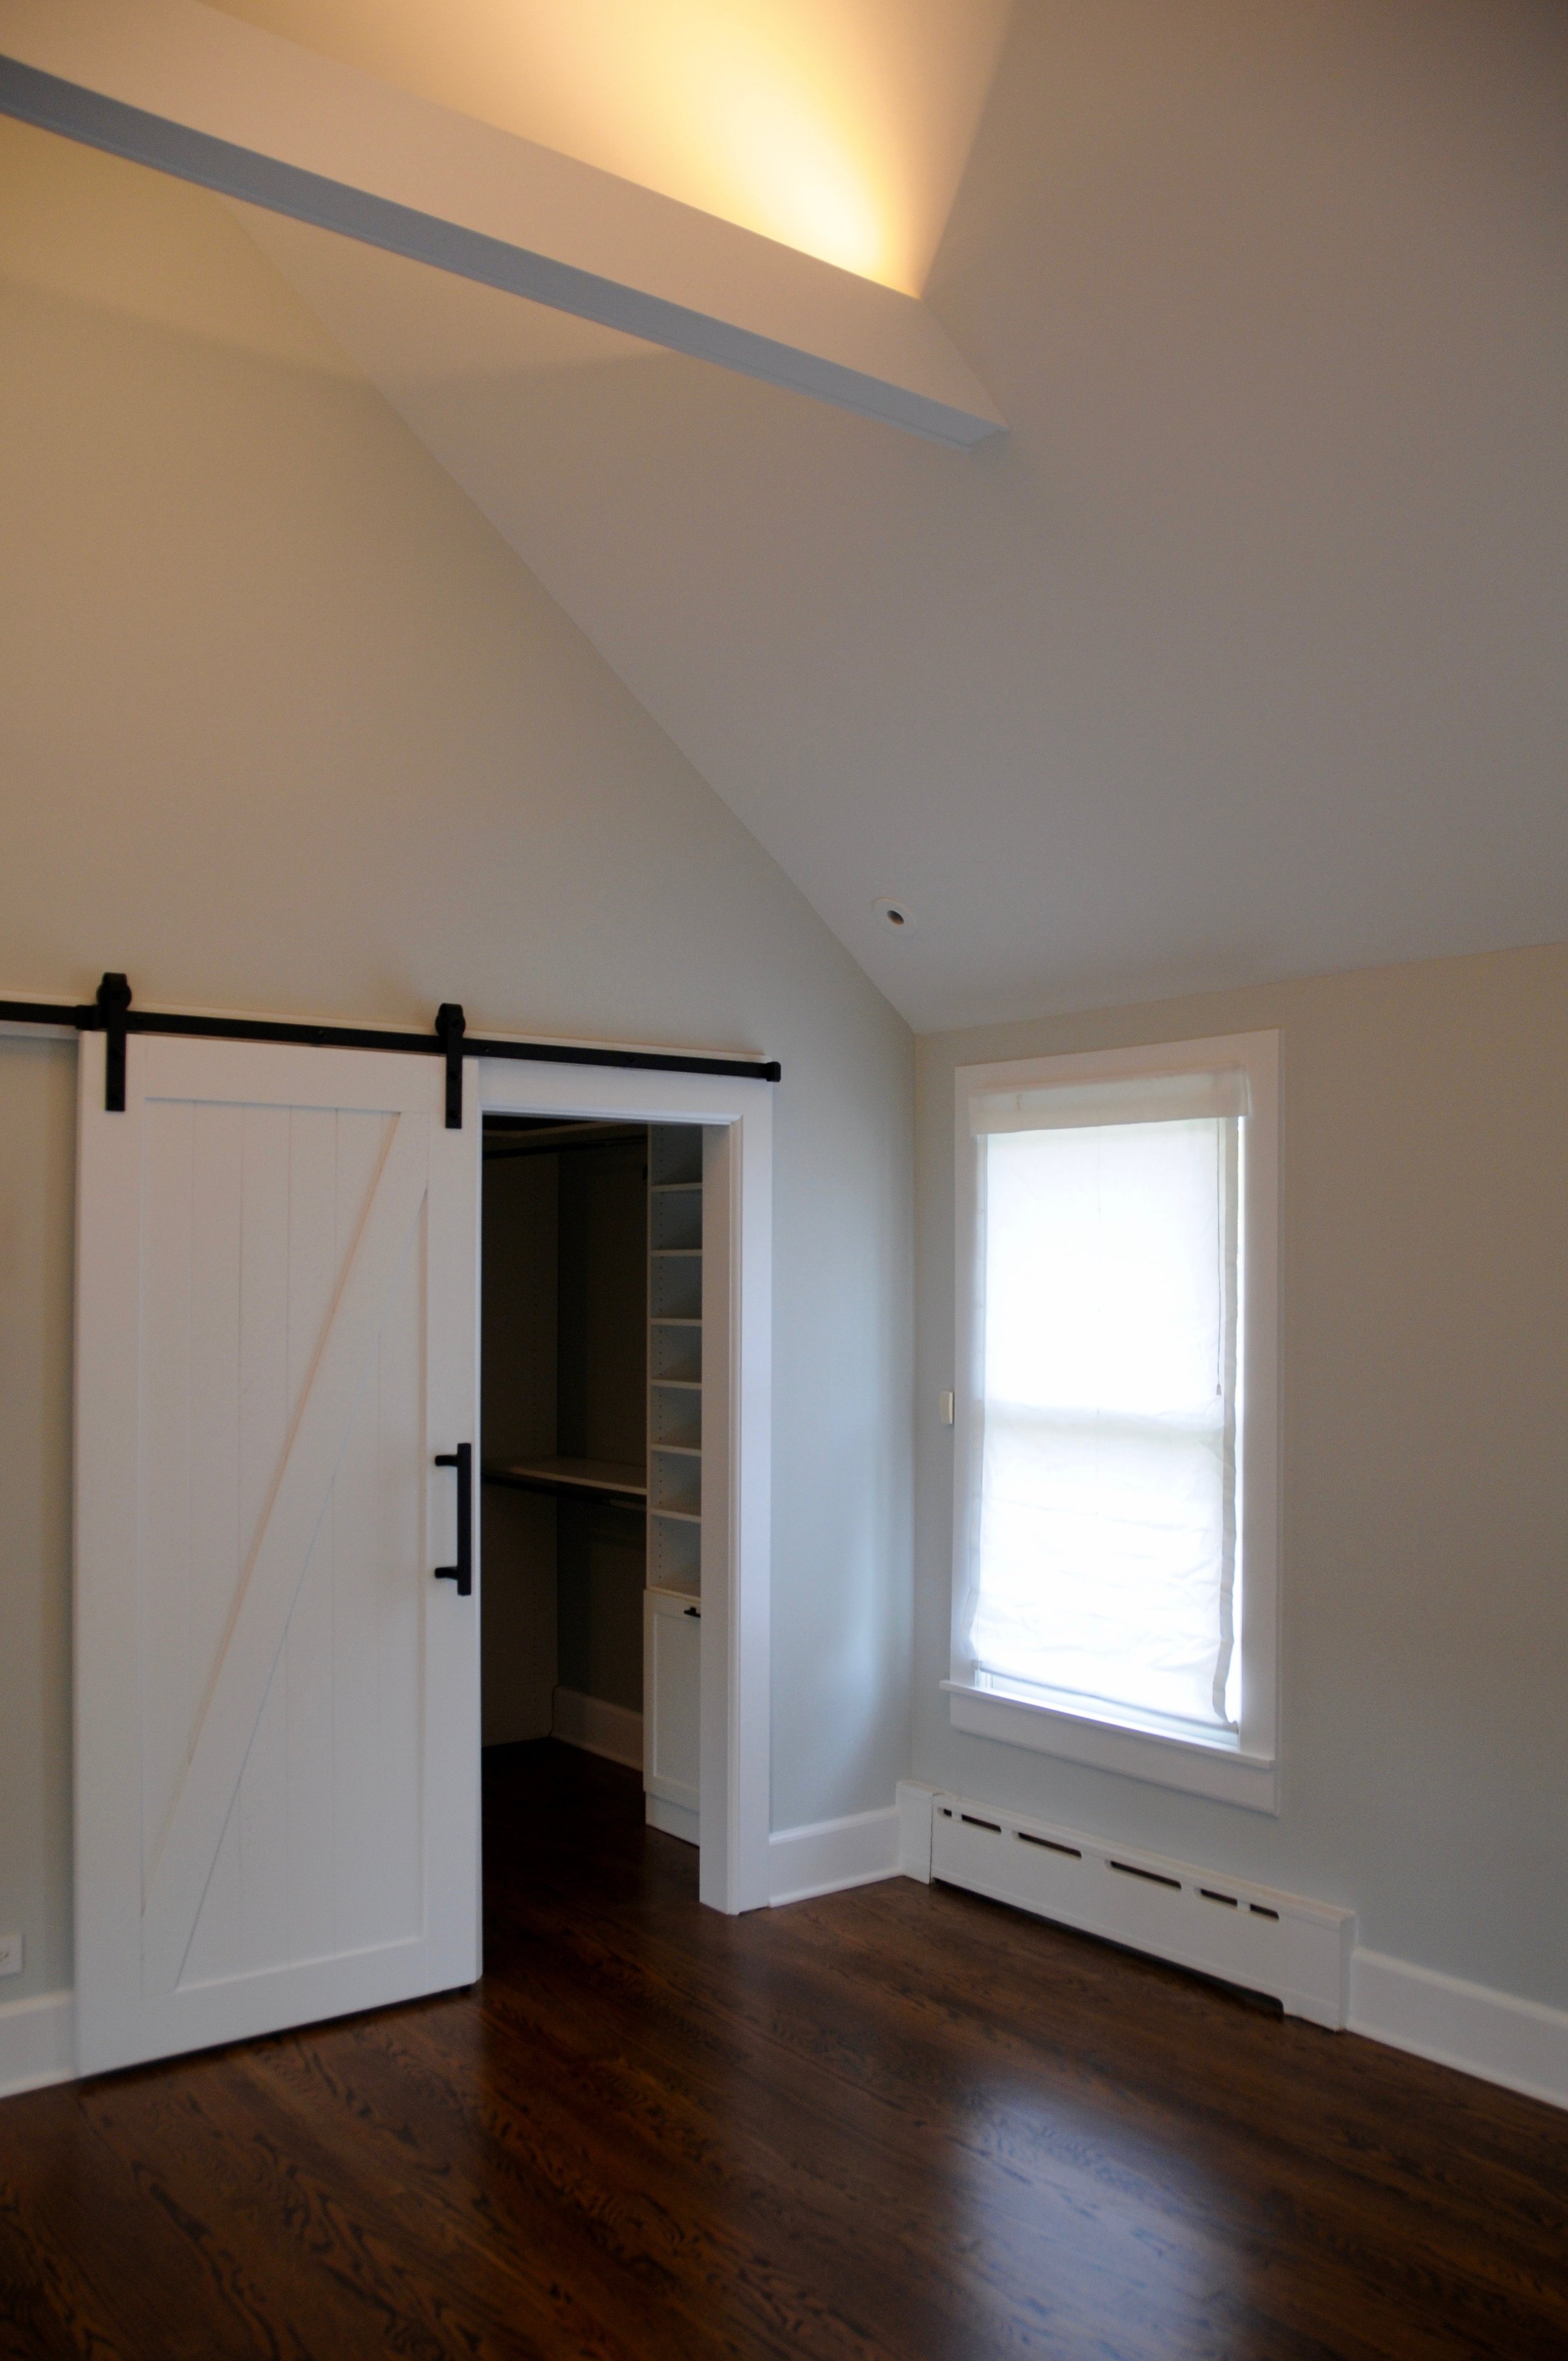 LED lighting recessed into the beams illuminates the tall ceilings with up-light.